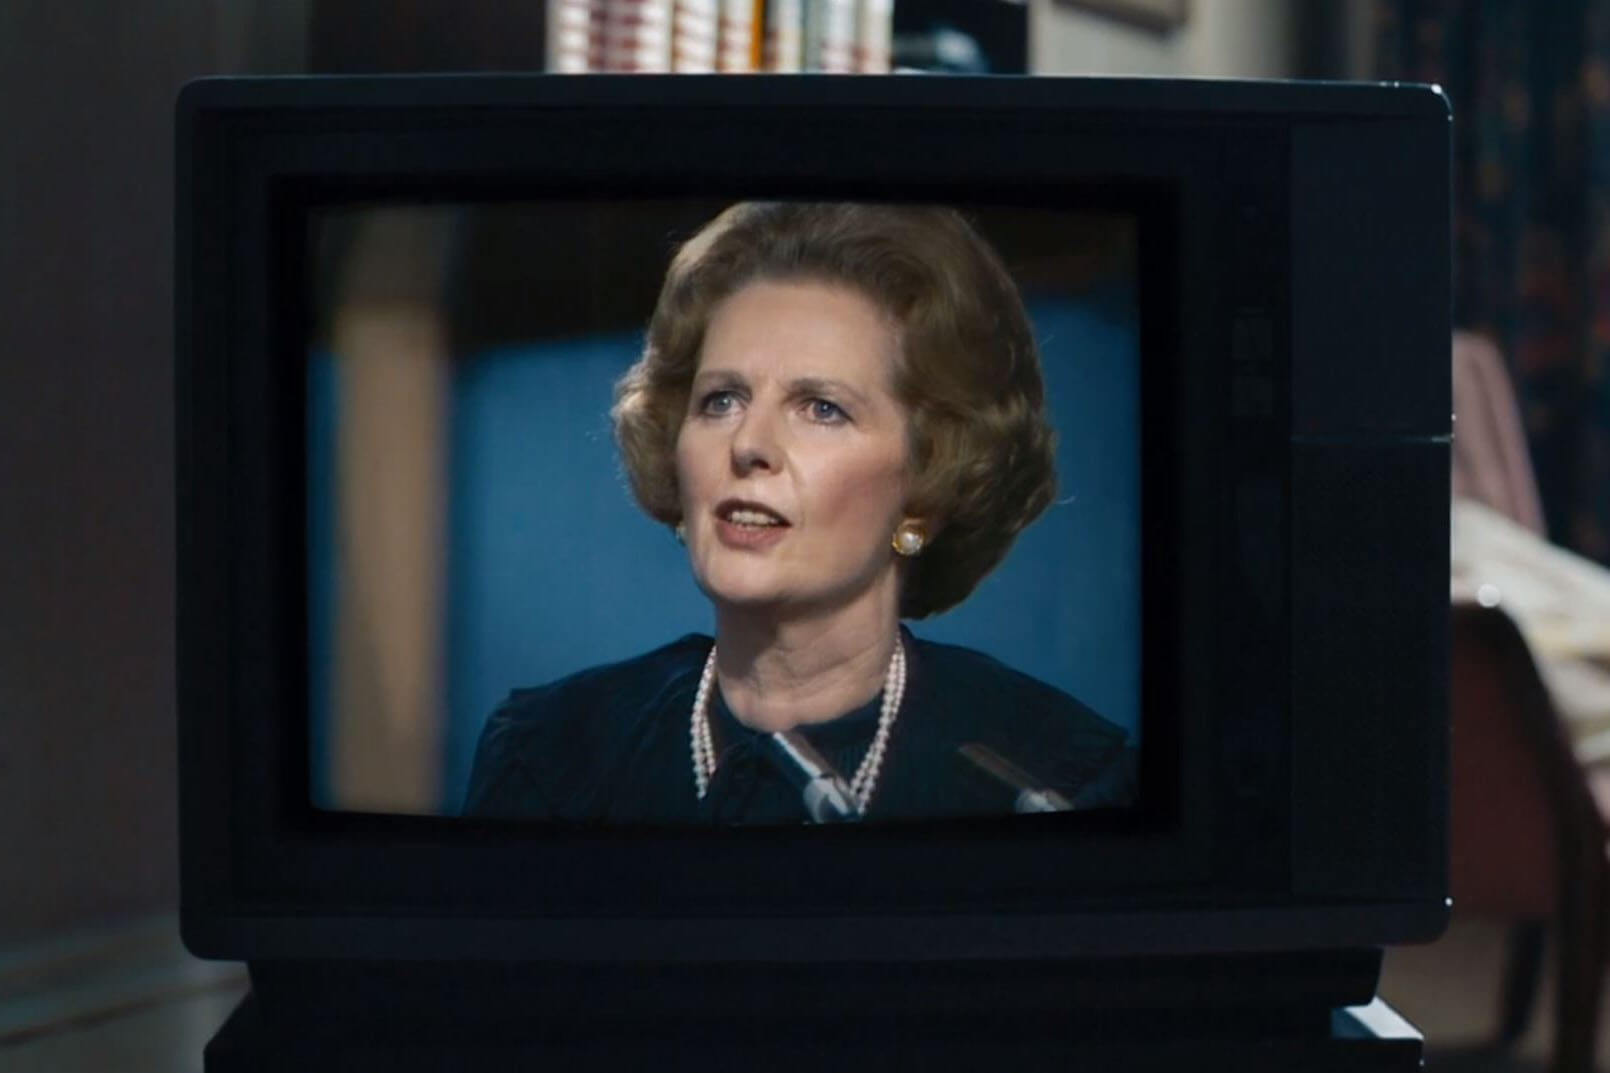 The Generation Right film looks at how Thatcherism changed Britain.